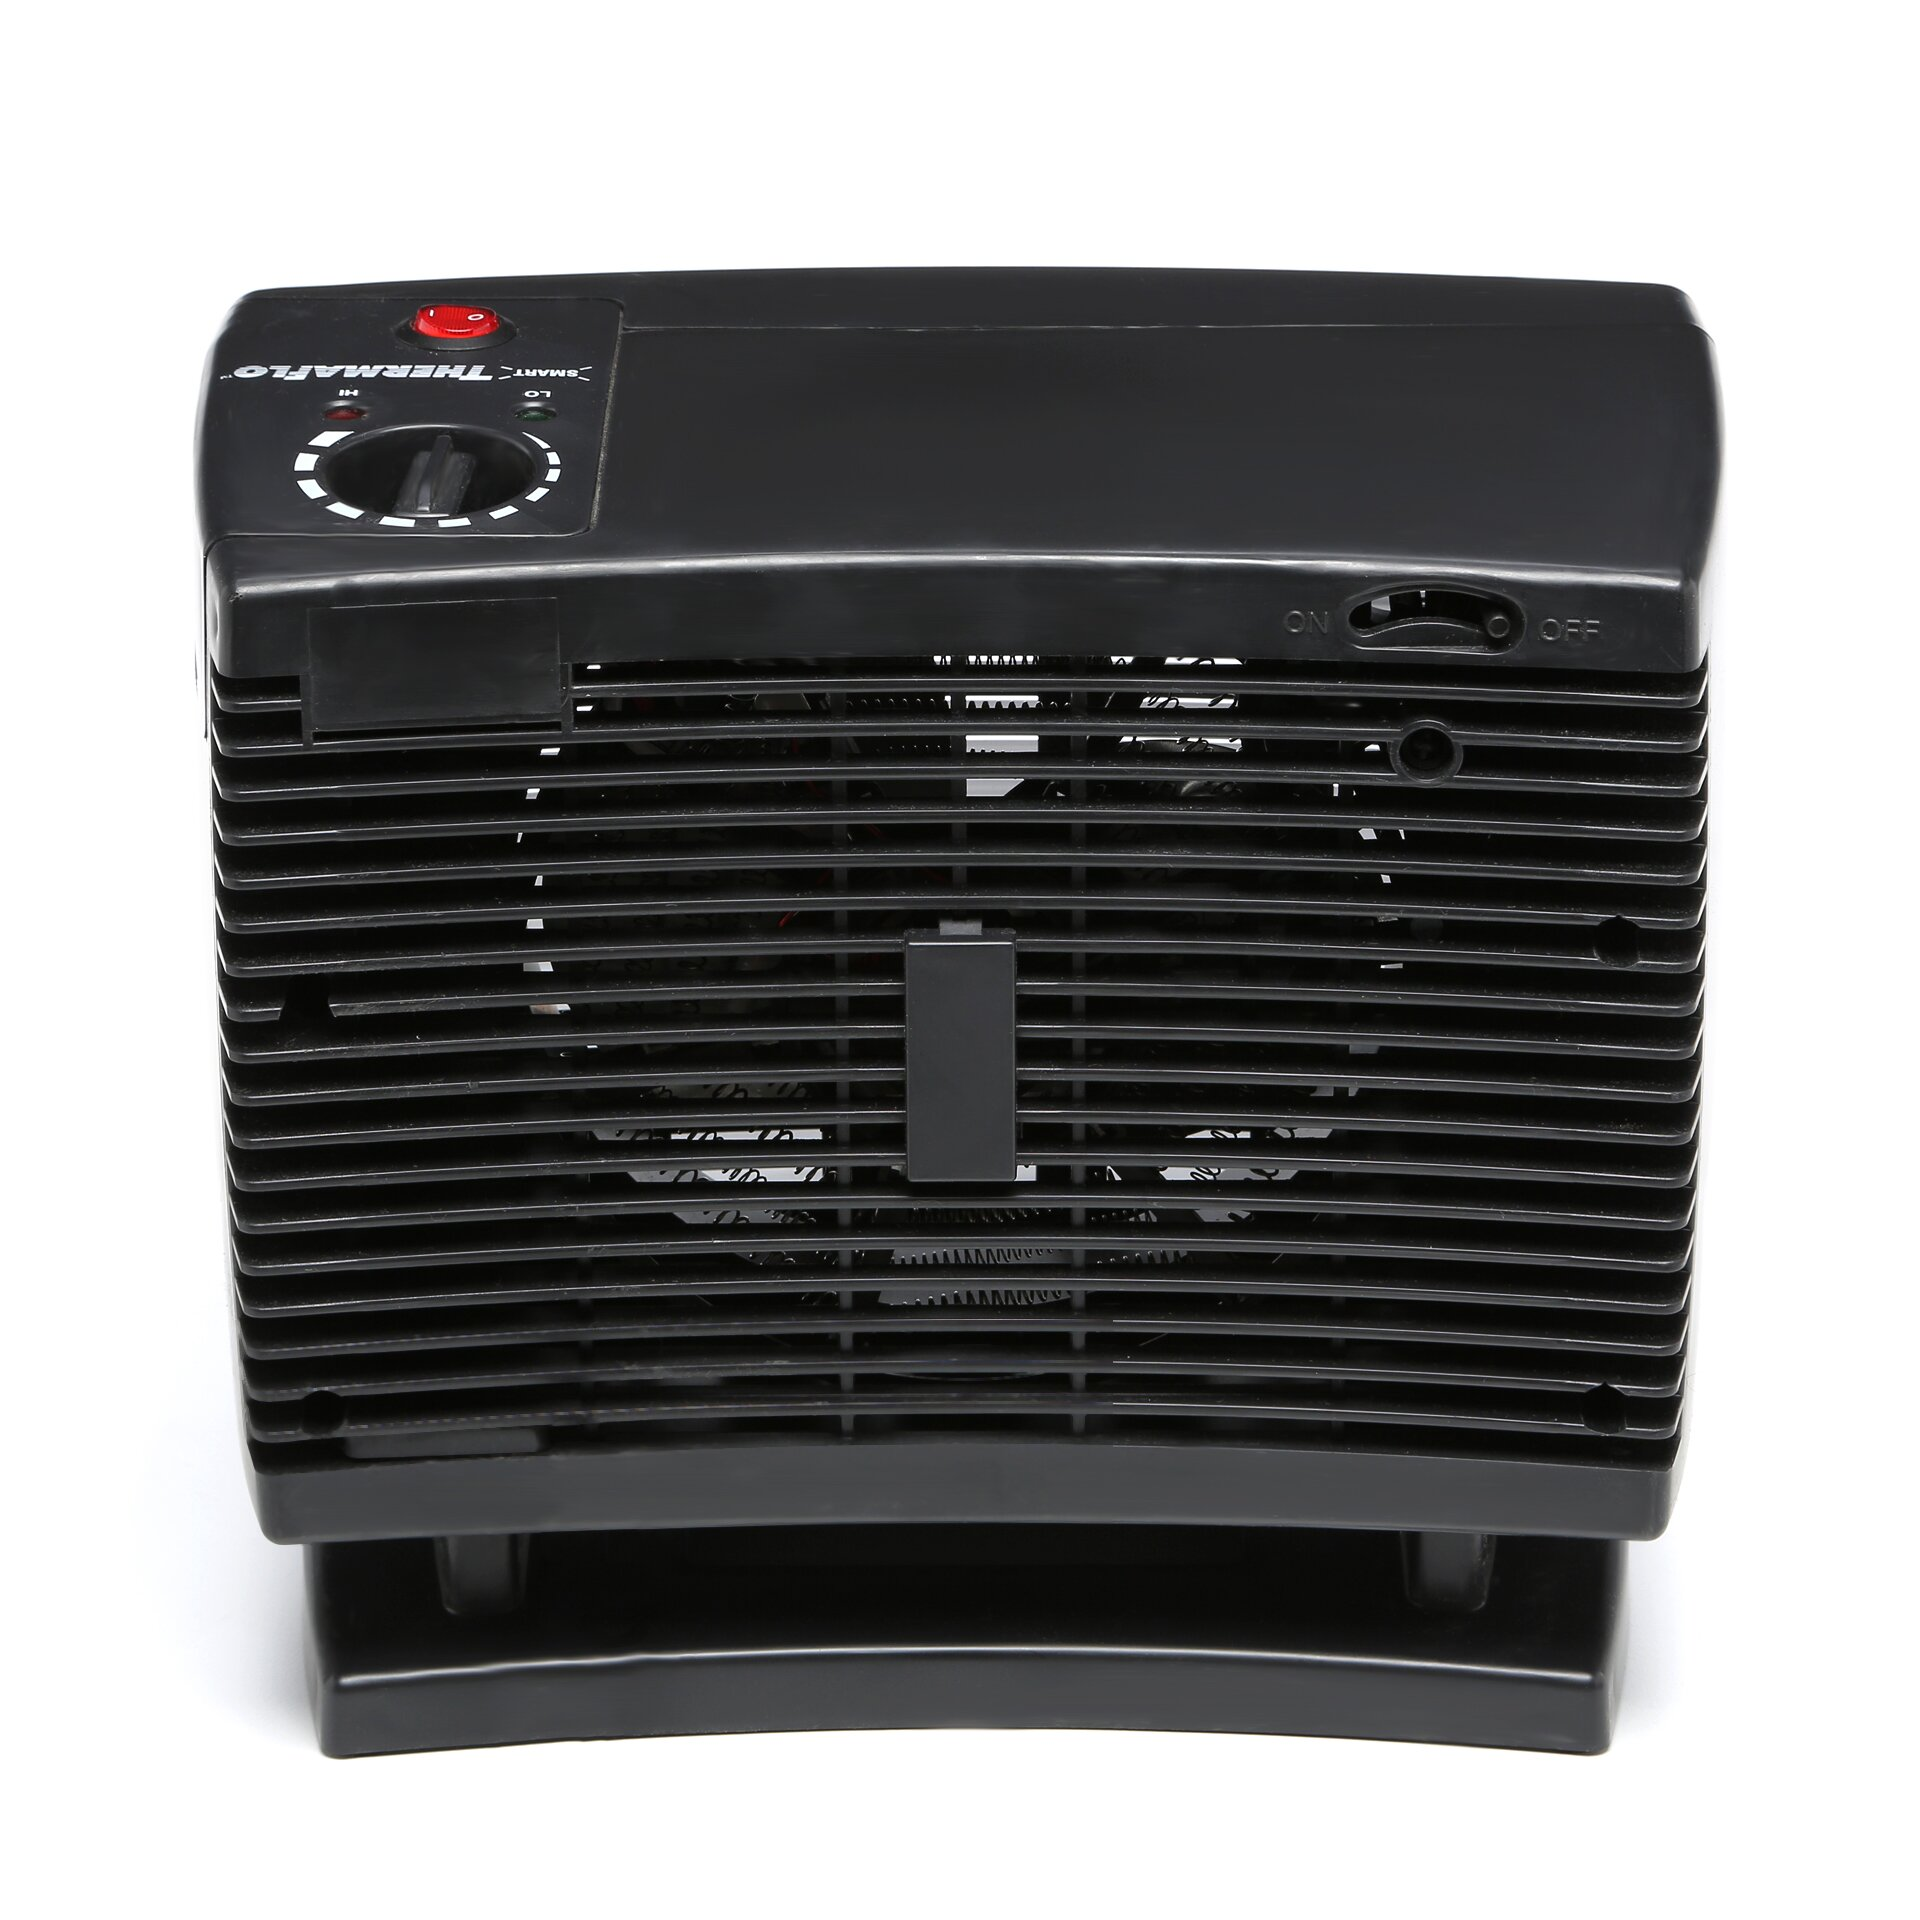 Seabreeze electric thermaflo 5 120 btu portable electric fan compact heater reviews - Best small space heaters reviews concept ...